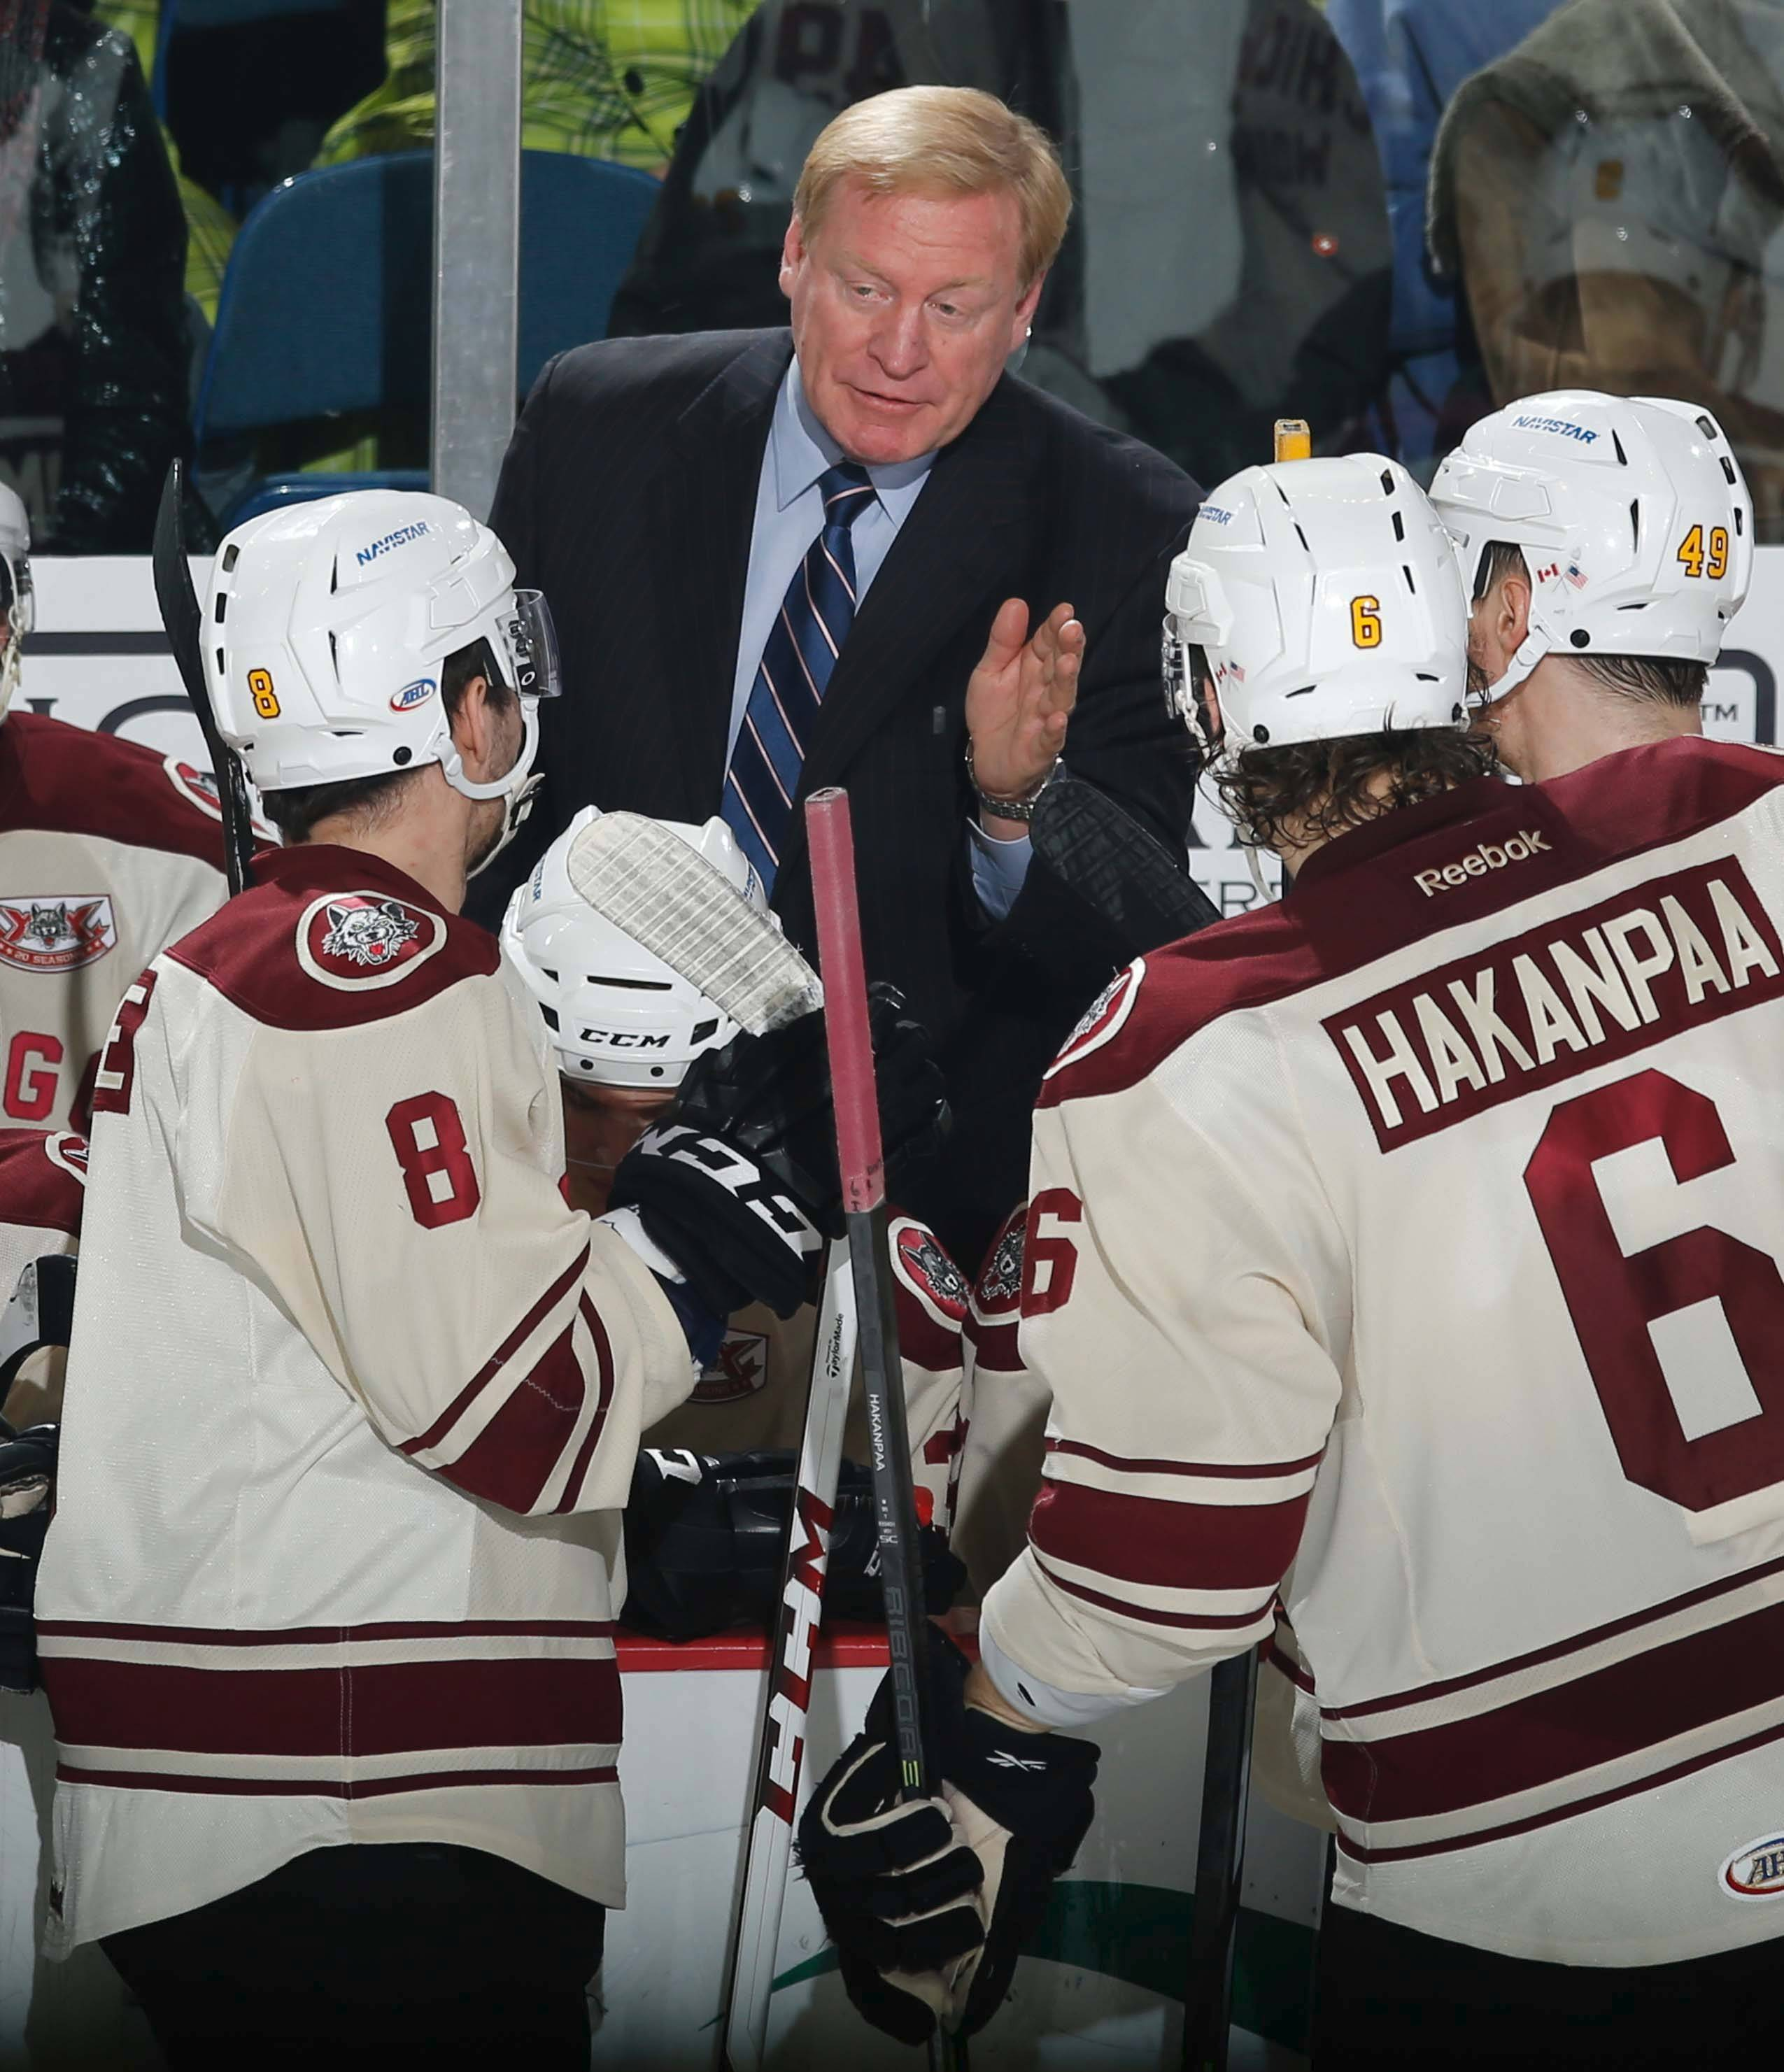 Wolves head coach John Anderson, here giving instructions to Ty Rattie (8), Jani Hakanpaa and Alex Bolduc (49), has collected 105 playoff wins in his 12 seasons with the Chicago Wolves.